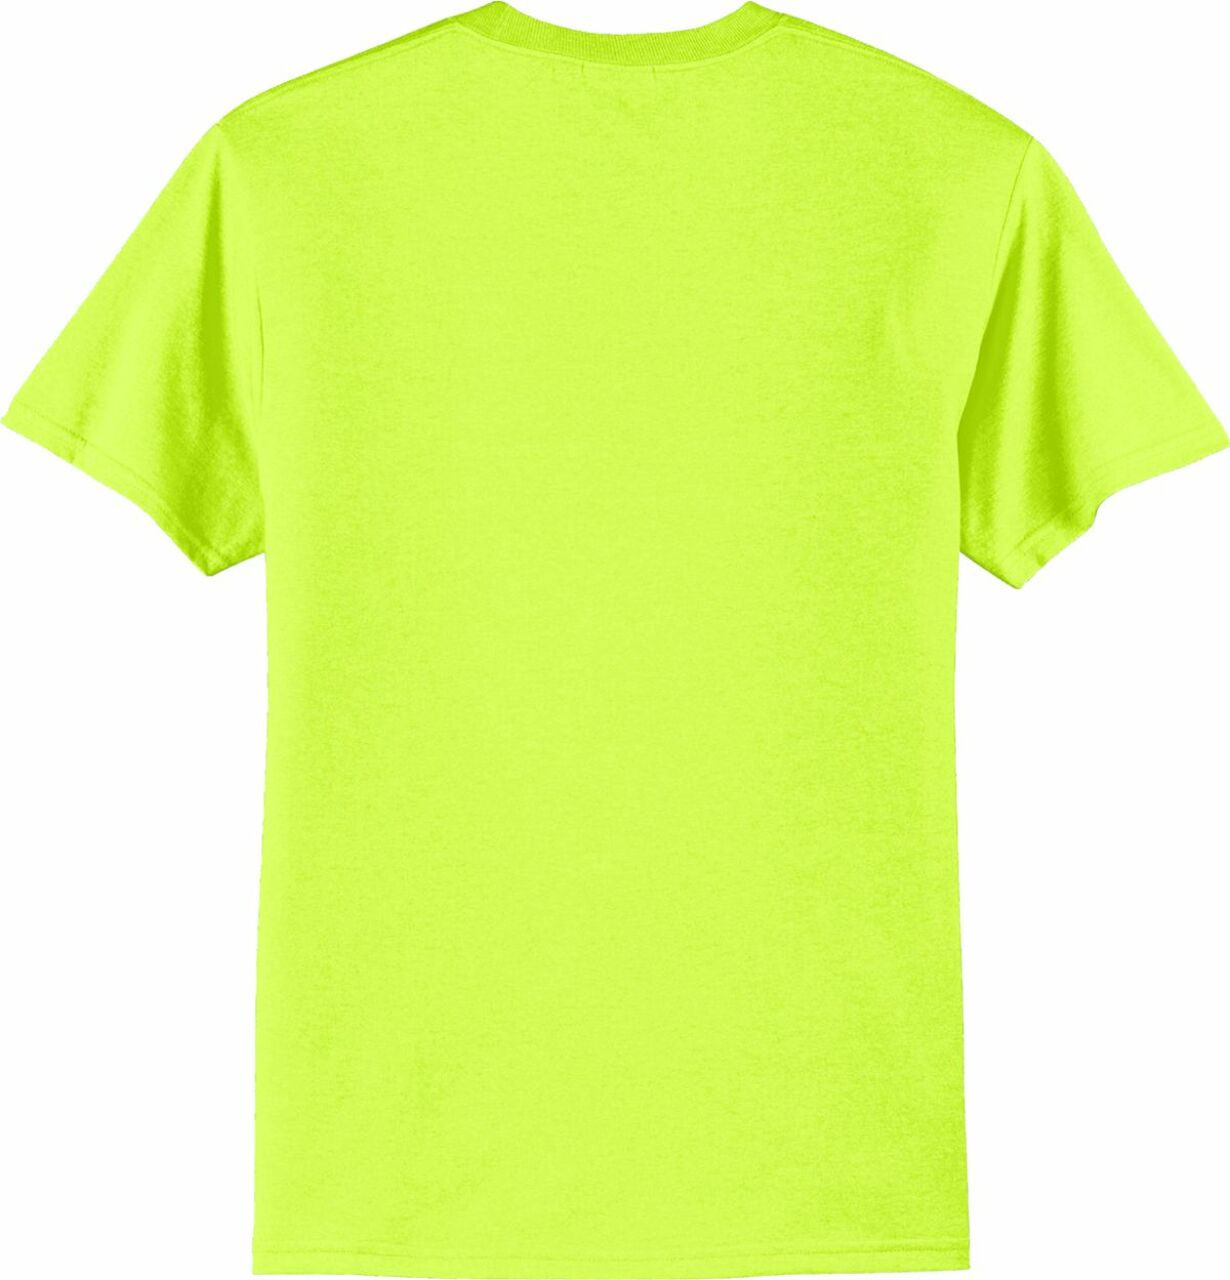 Best Construction Safety Shirts | Safety Green T-Shirt